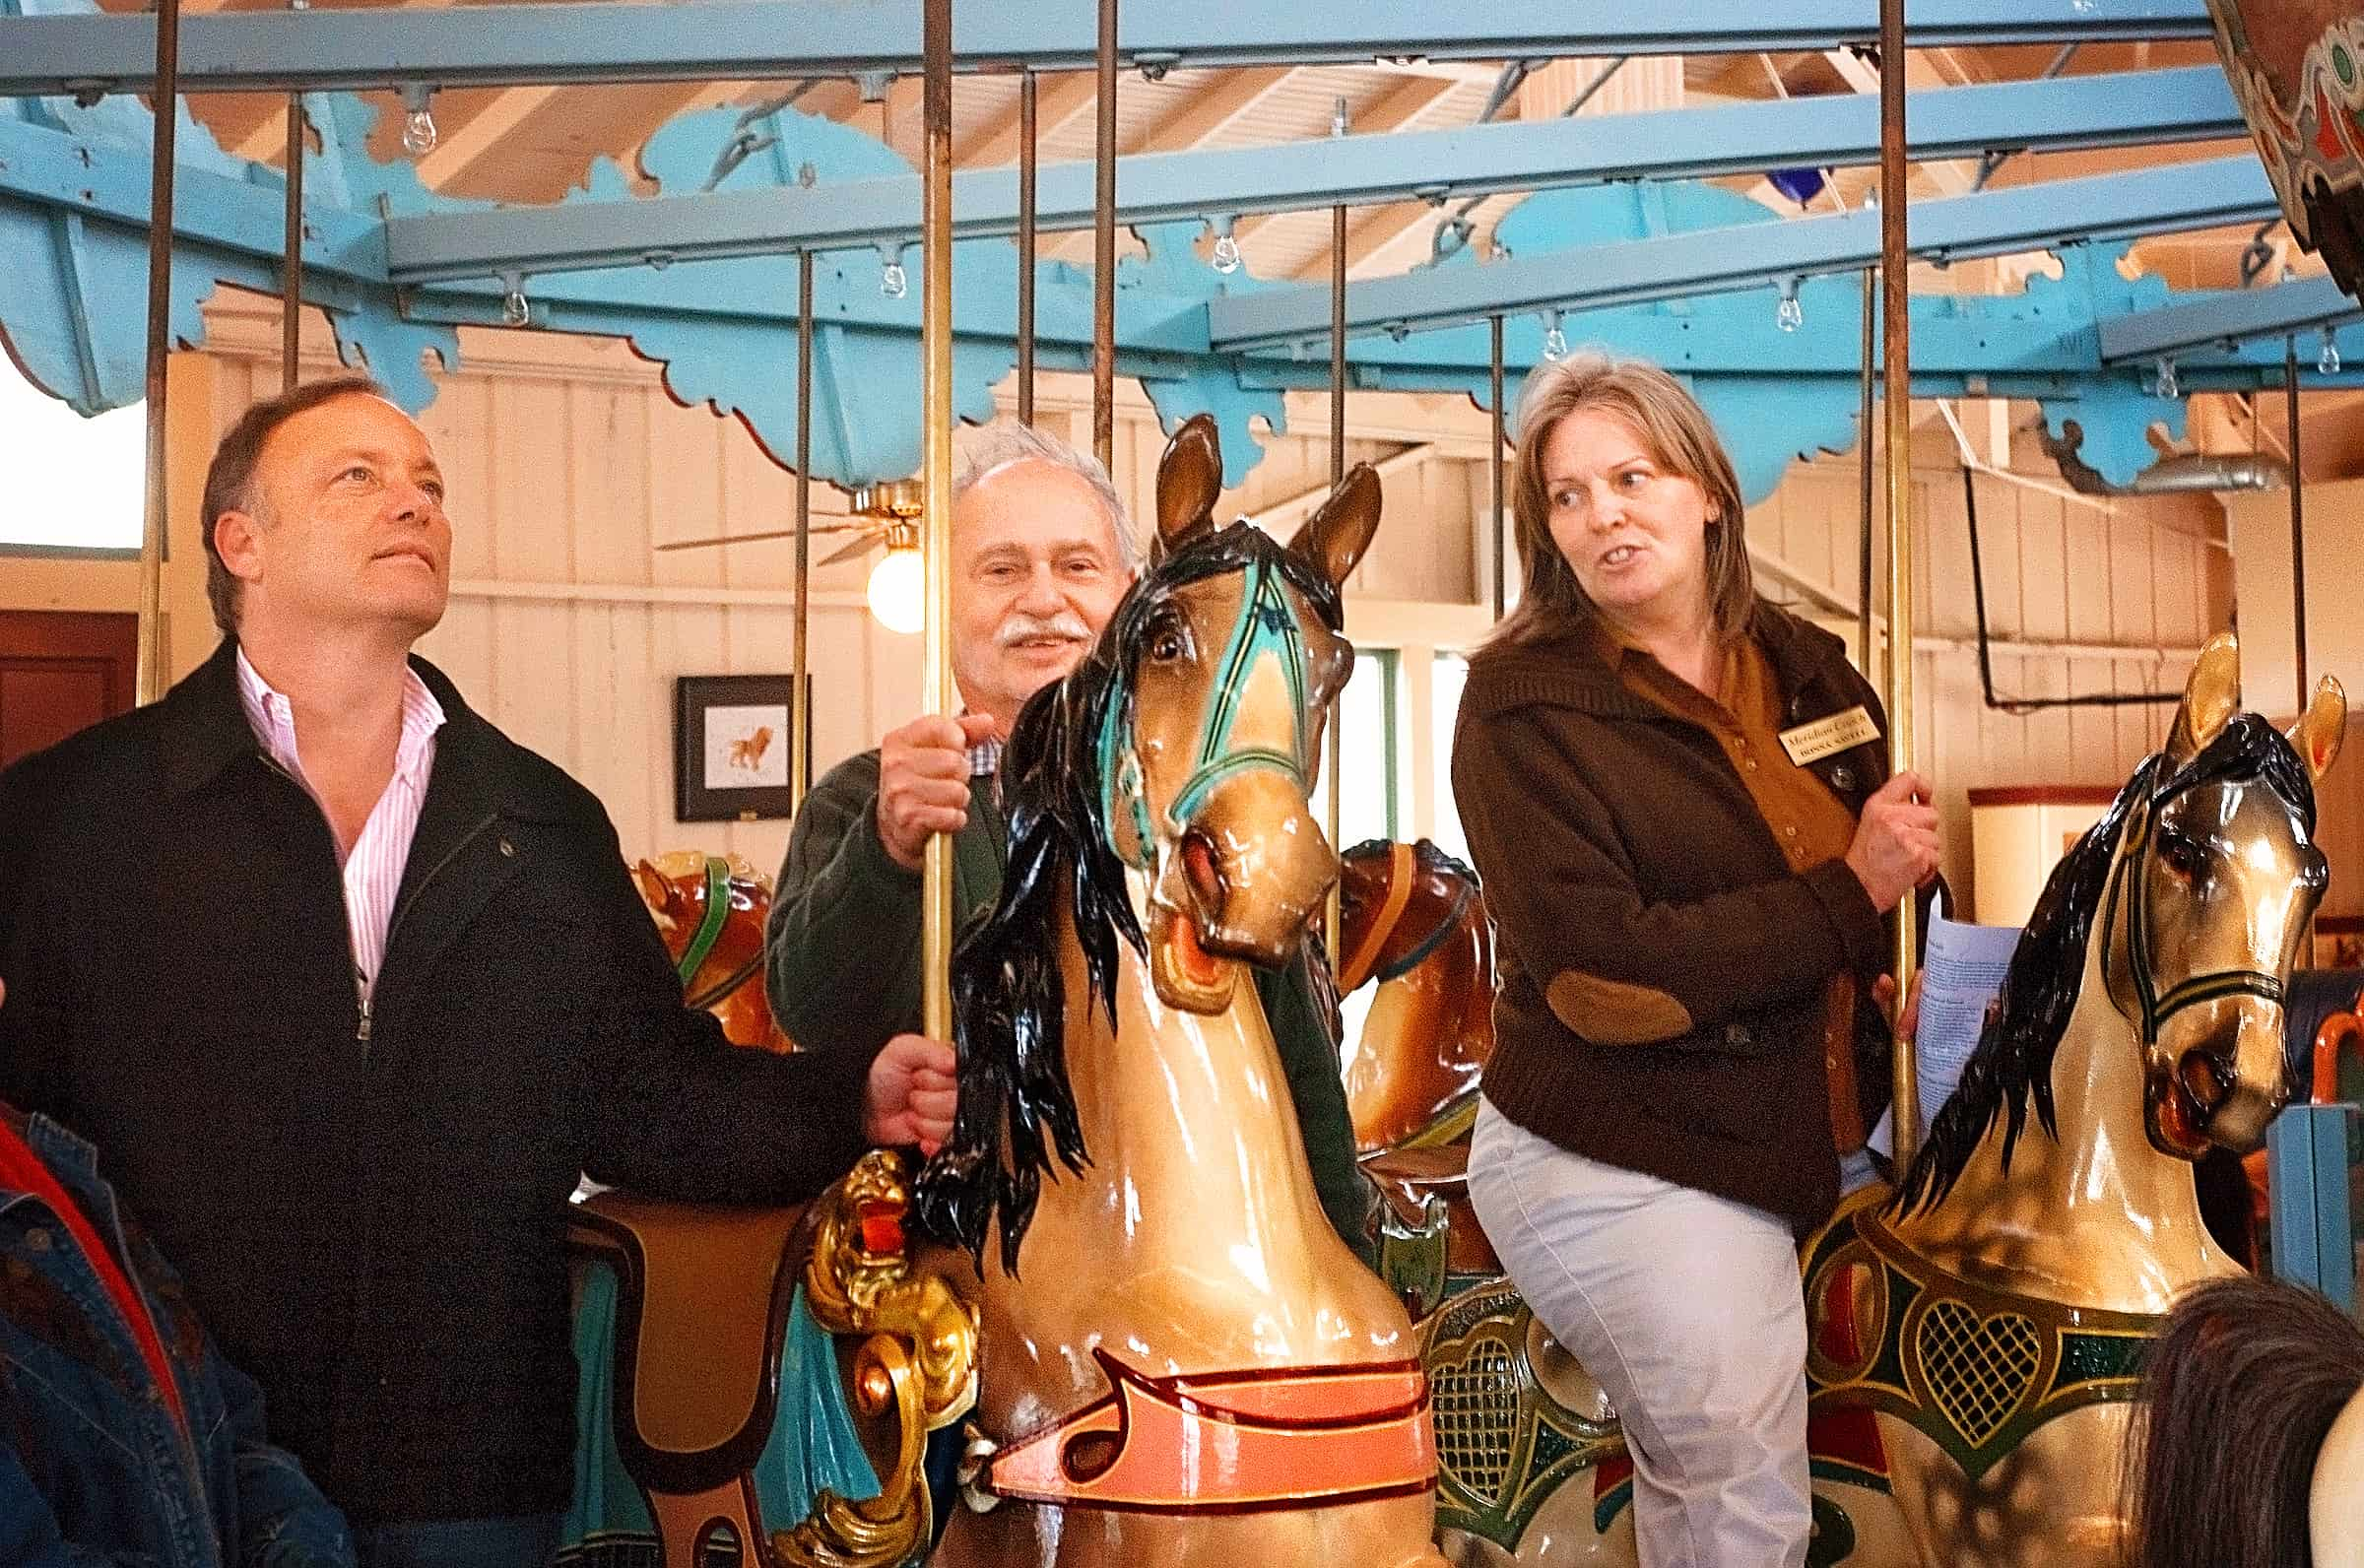 Riding the Dentzel Carousel in Meridian, Mississippi